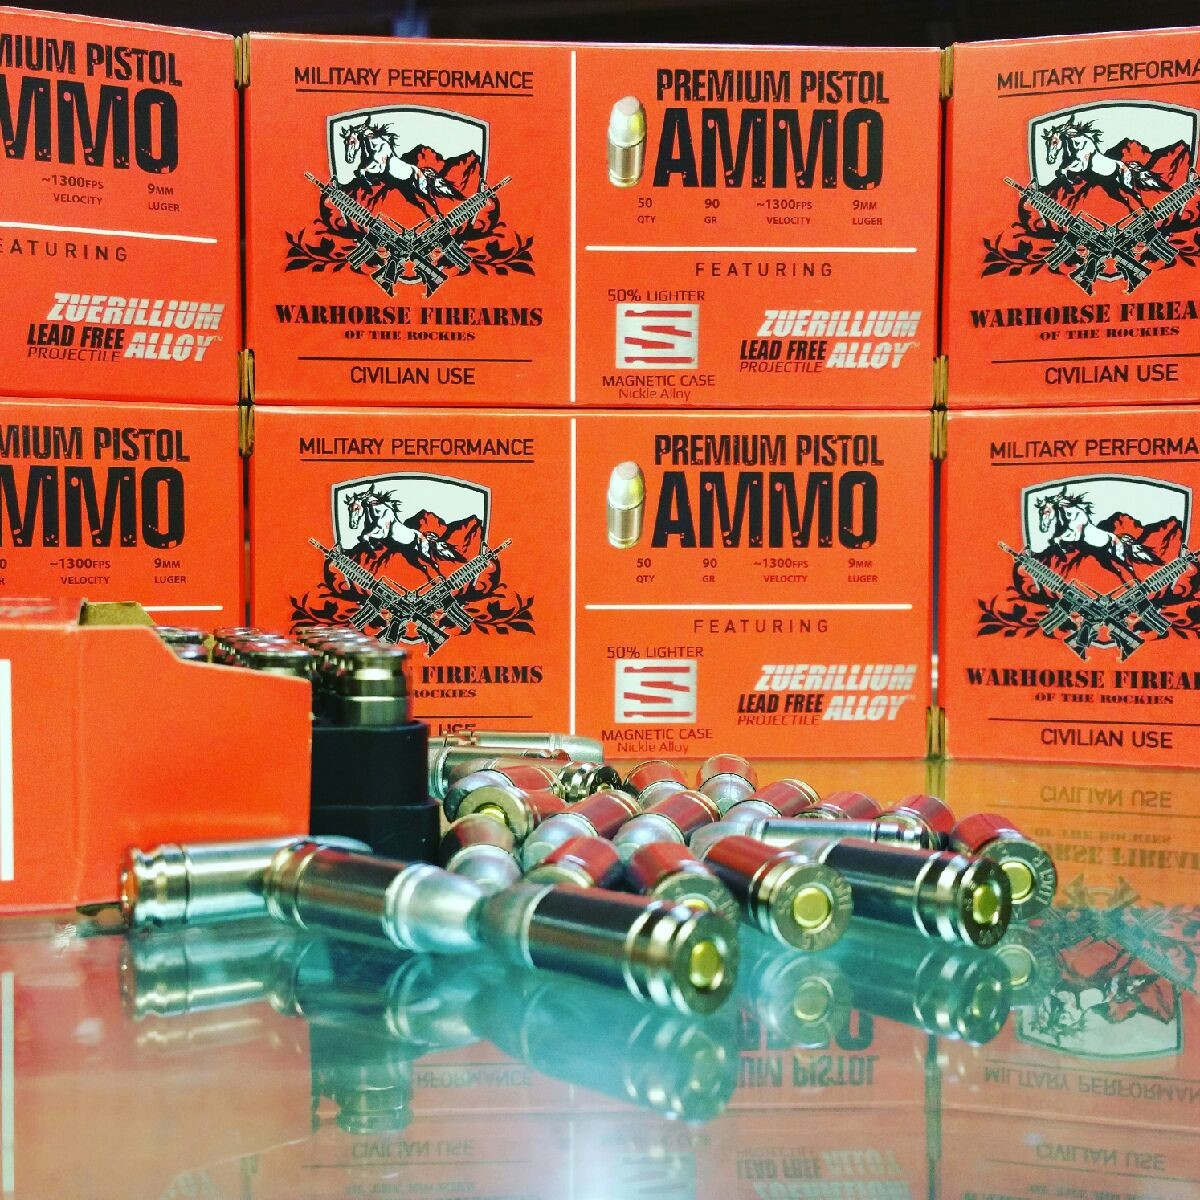 Shell Shock Technologies' NAS3 Casings Used in Warhorse Firearms of the Rockies' New Ammo Line